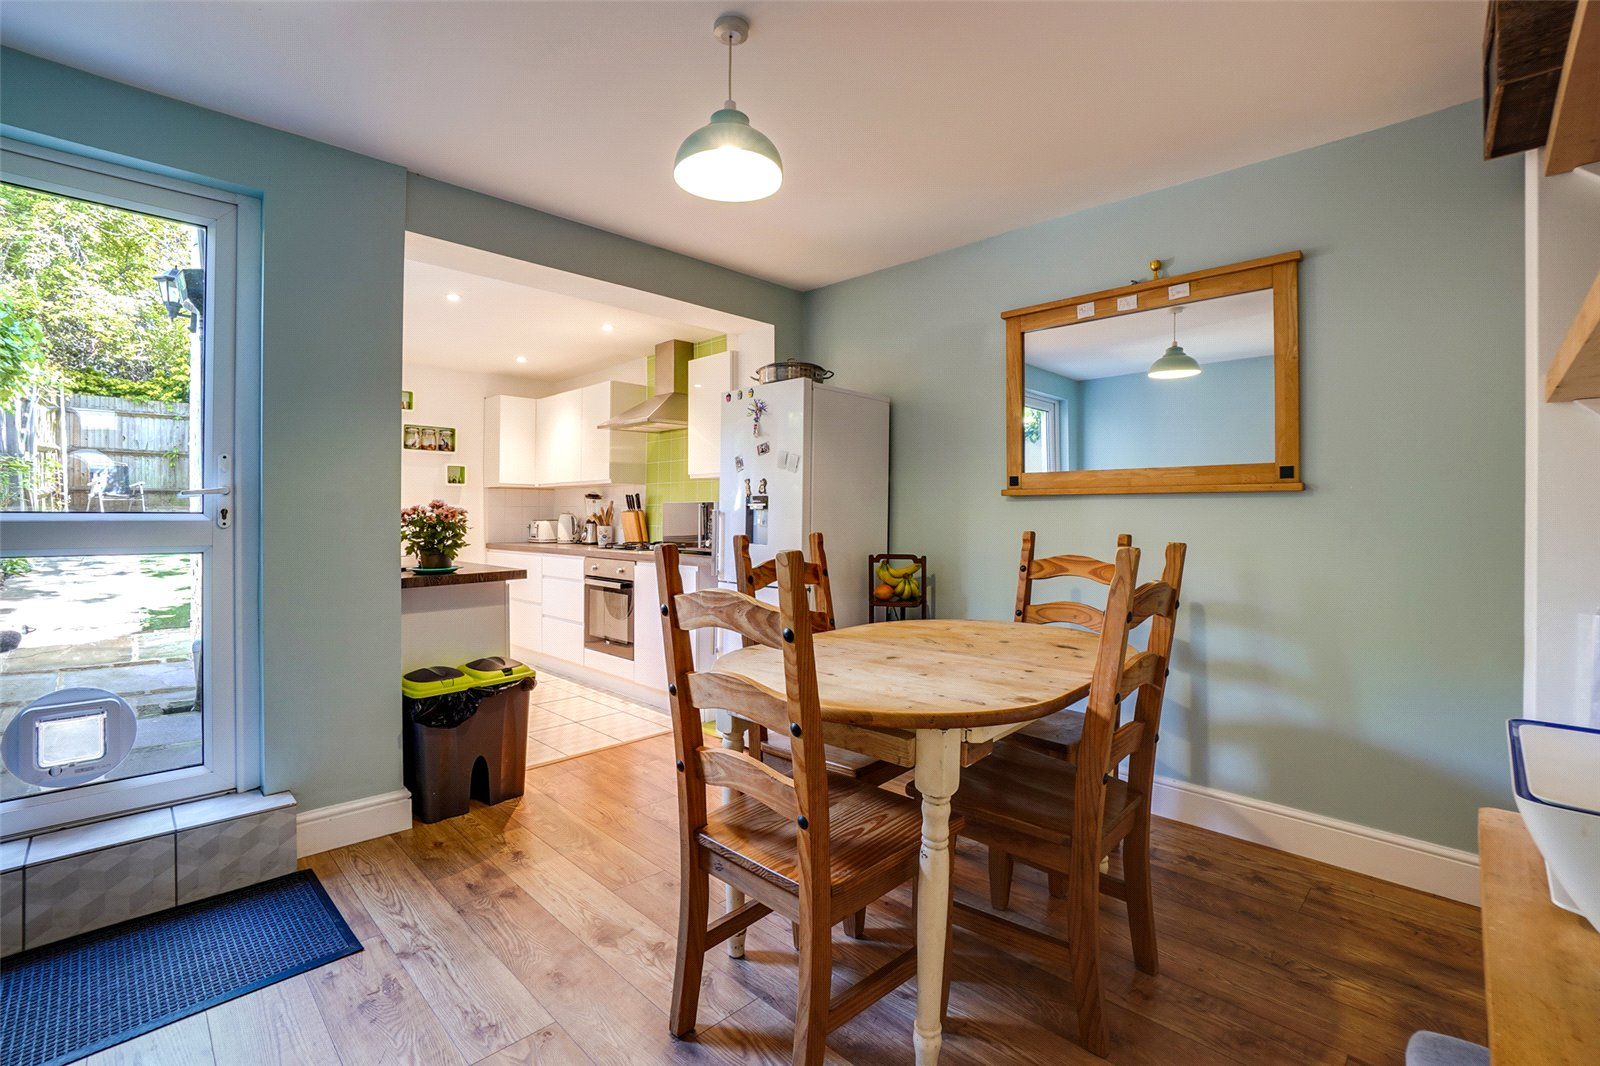 3 bed house for sale in Gladstone Road, Penenden Heath, ME14